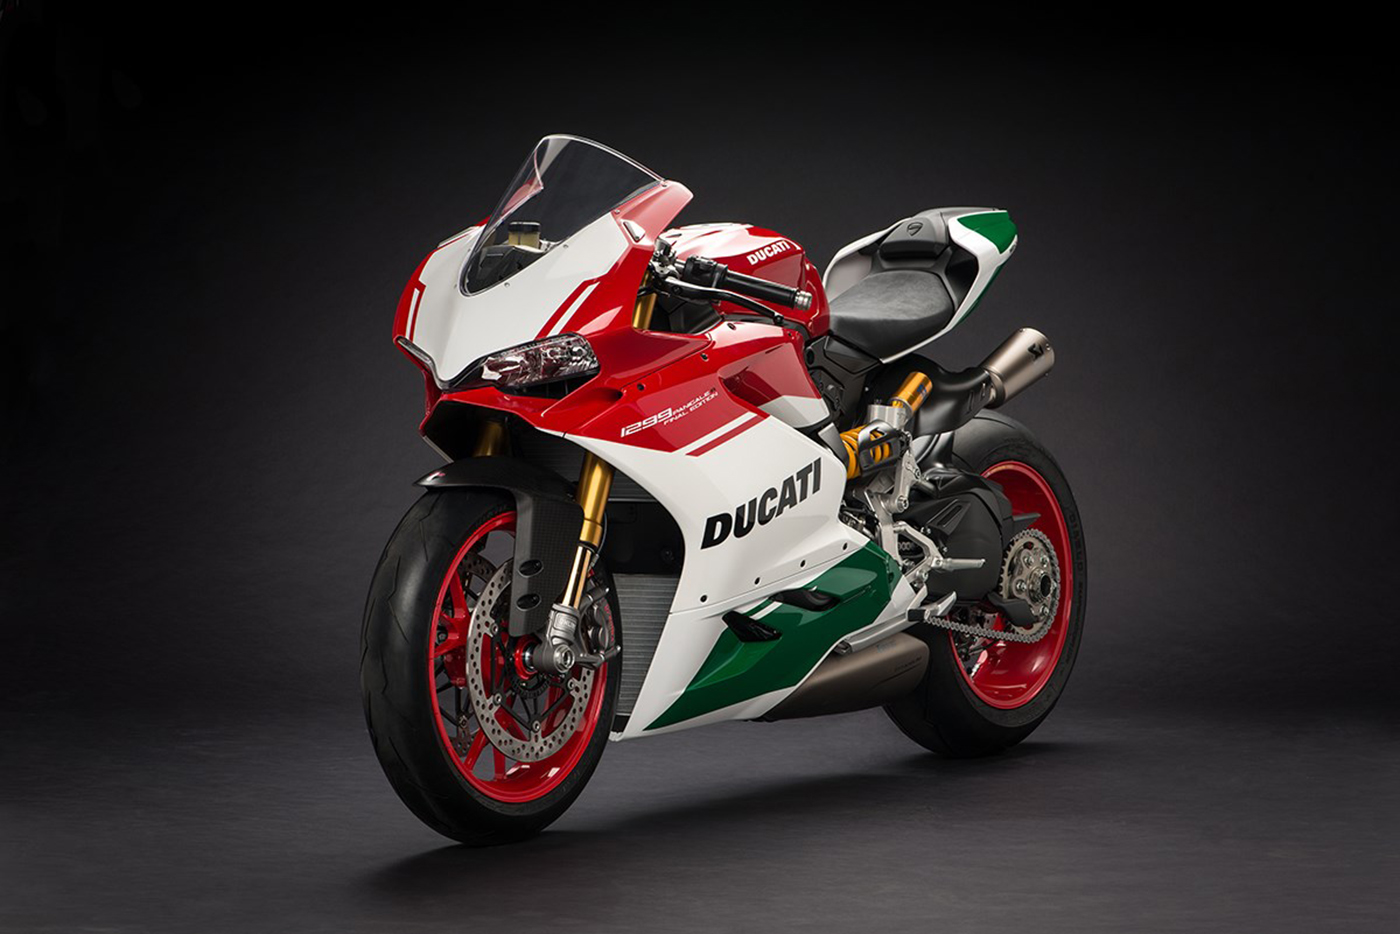 ducati-1299-panigale-r-final-edition-15.jpg